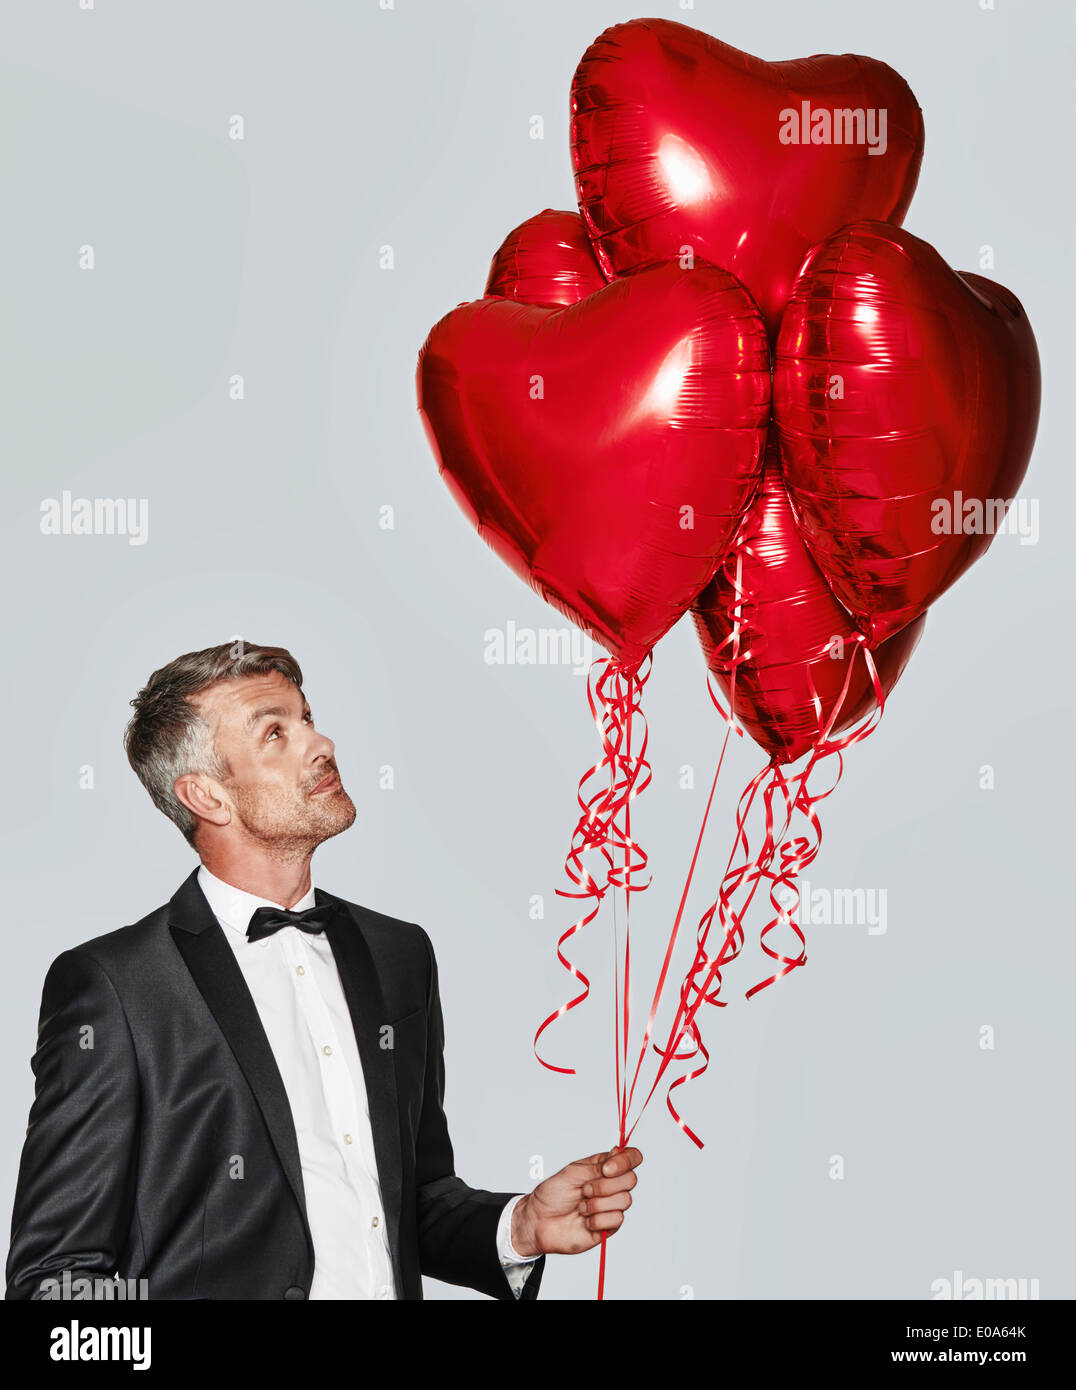 Portrait of man in tuxedo with heart-shaped balloons - Stock Image